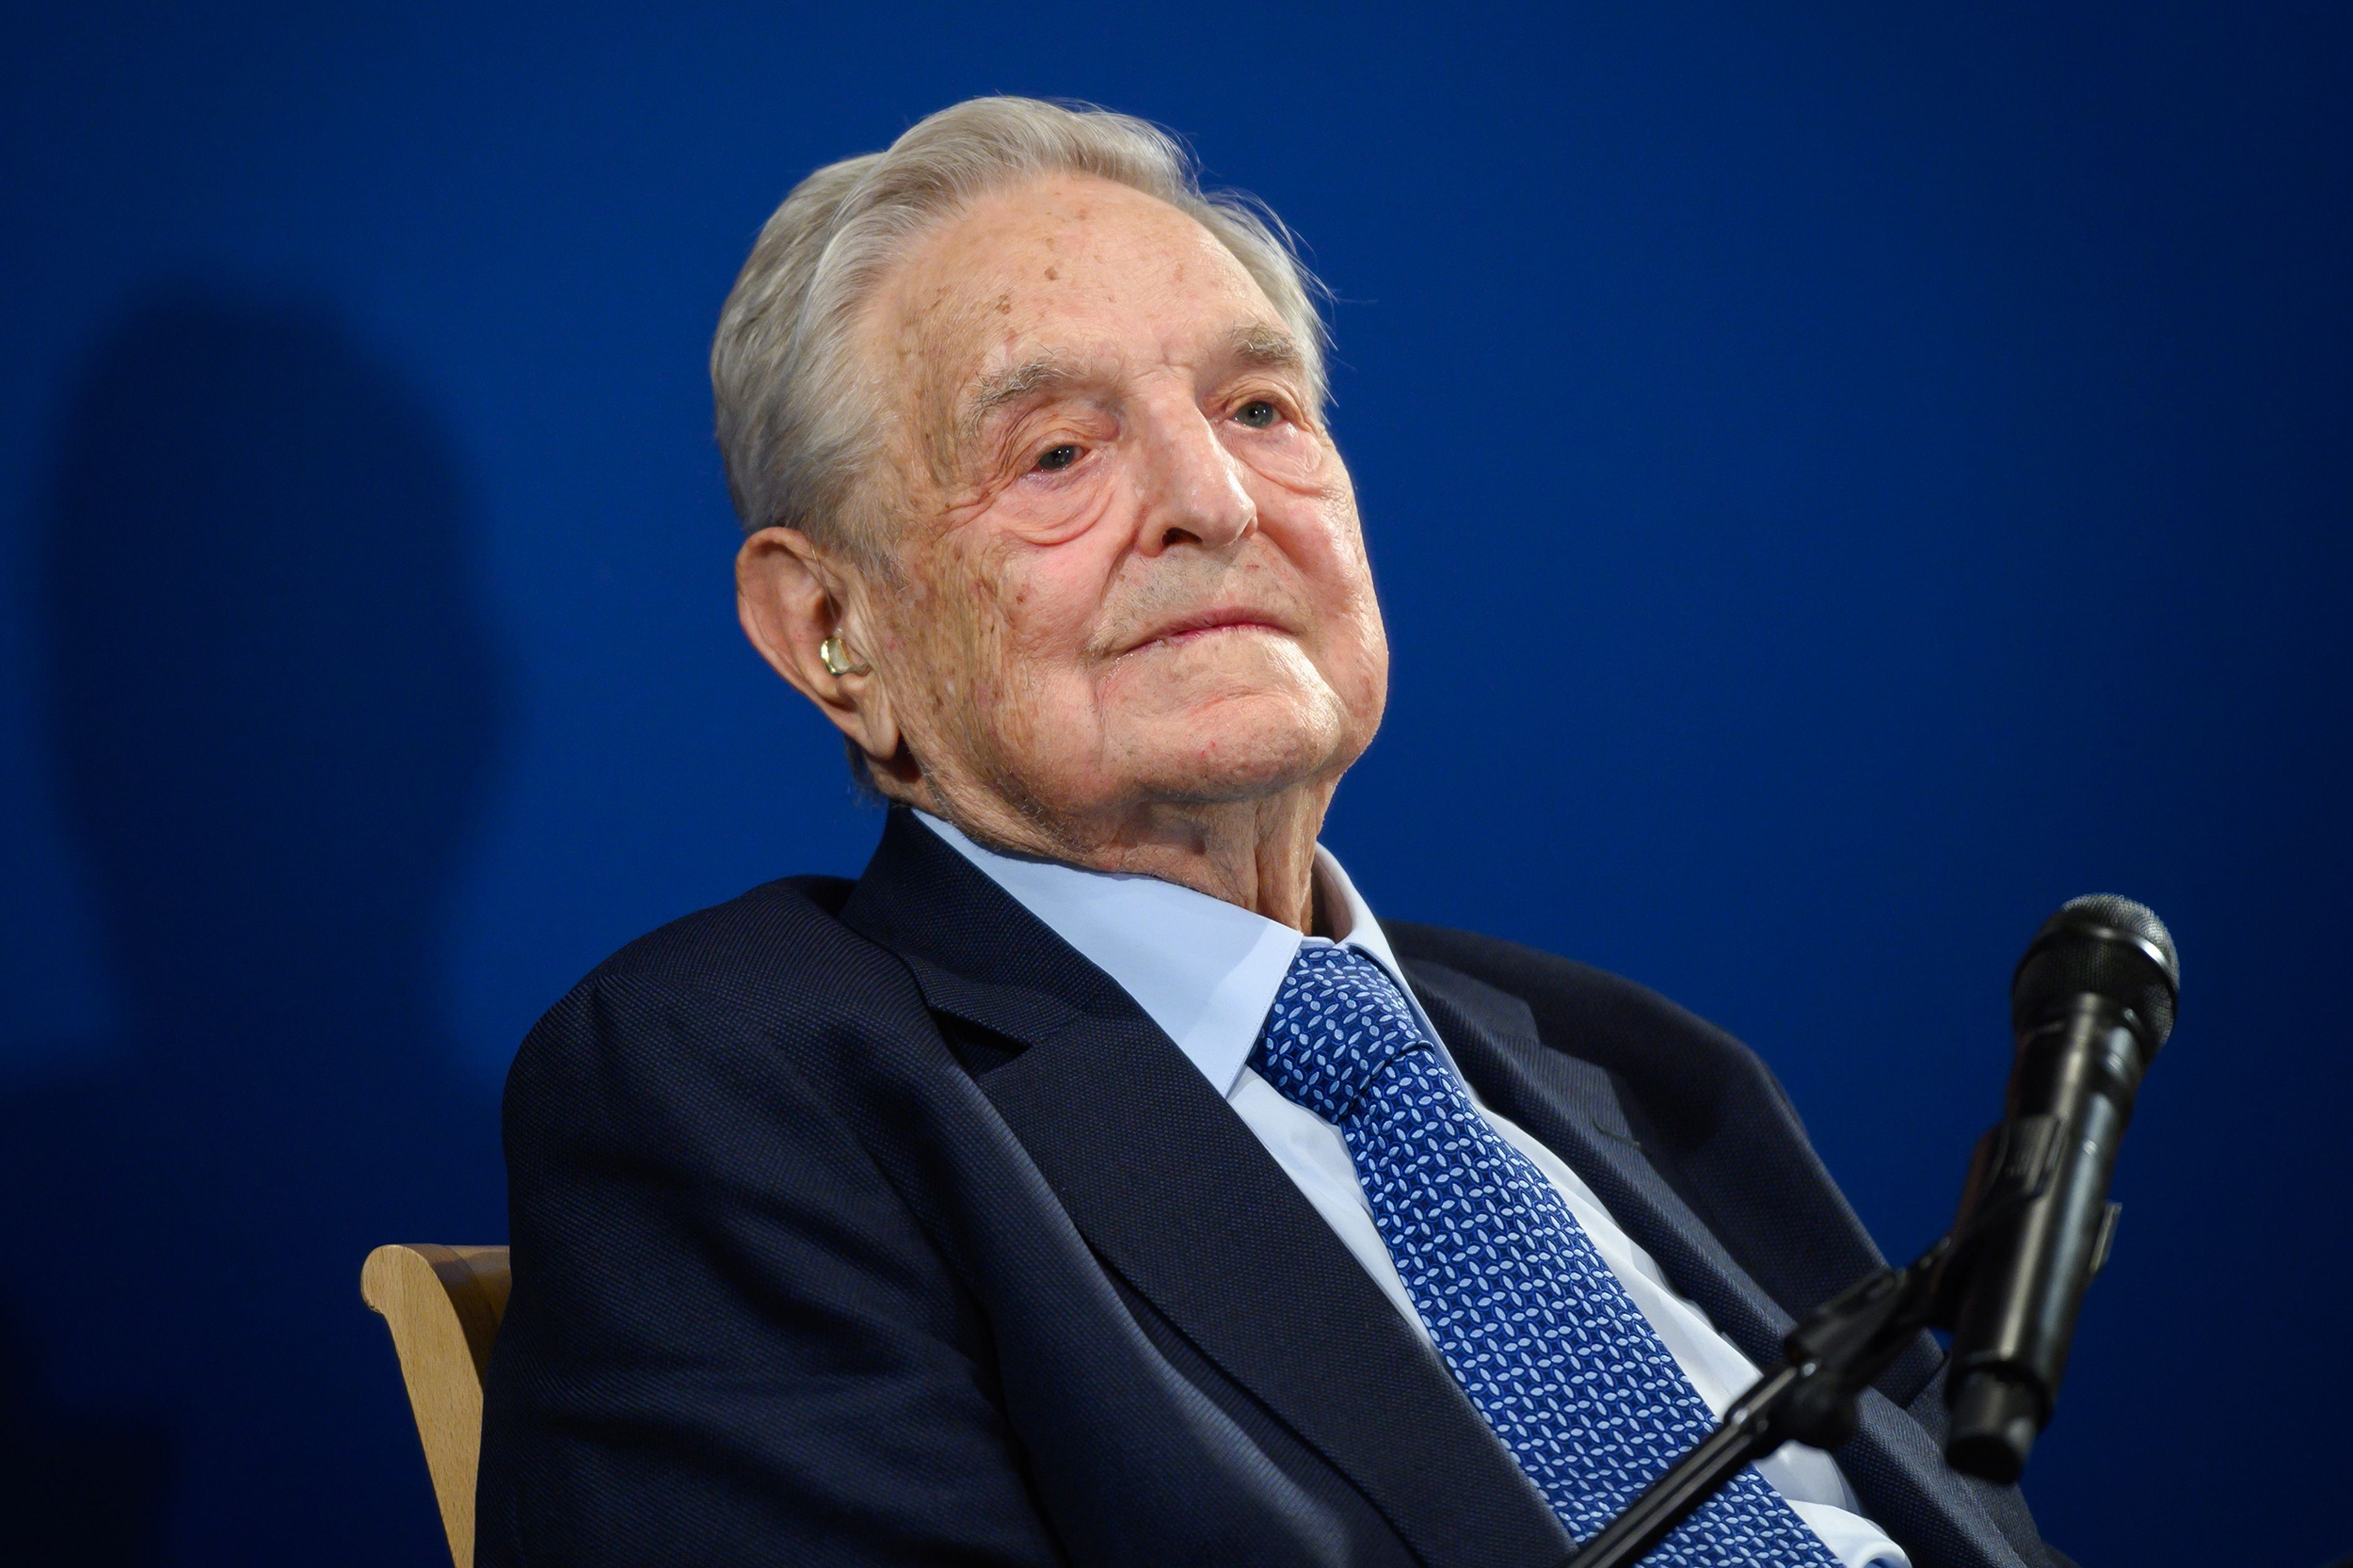 George Soros at the World Economic Forum annual meeting in Davos, Switzerland, on January 23.